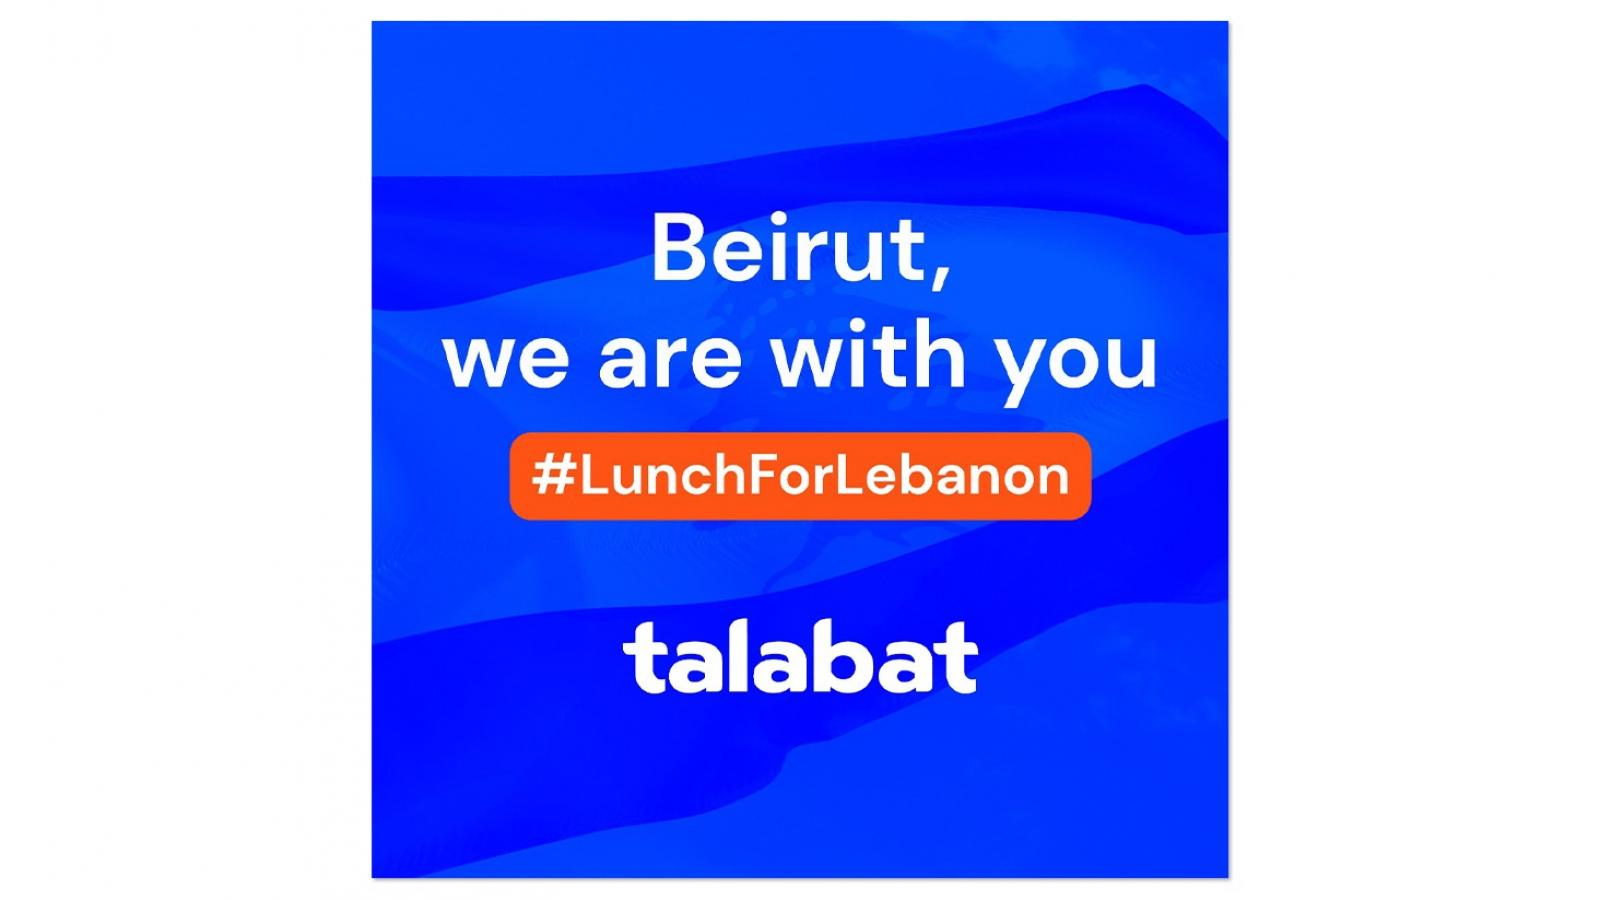 Talabat launches #LunchforLebanon initiative in support of Beirut